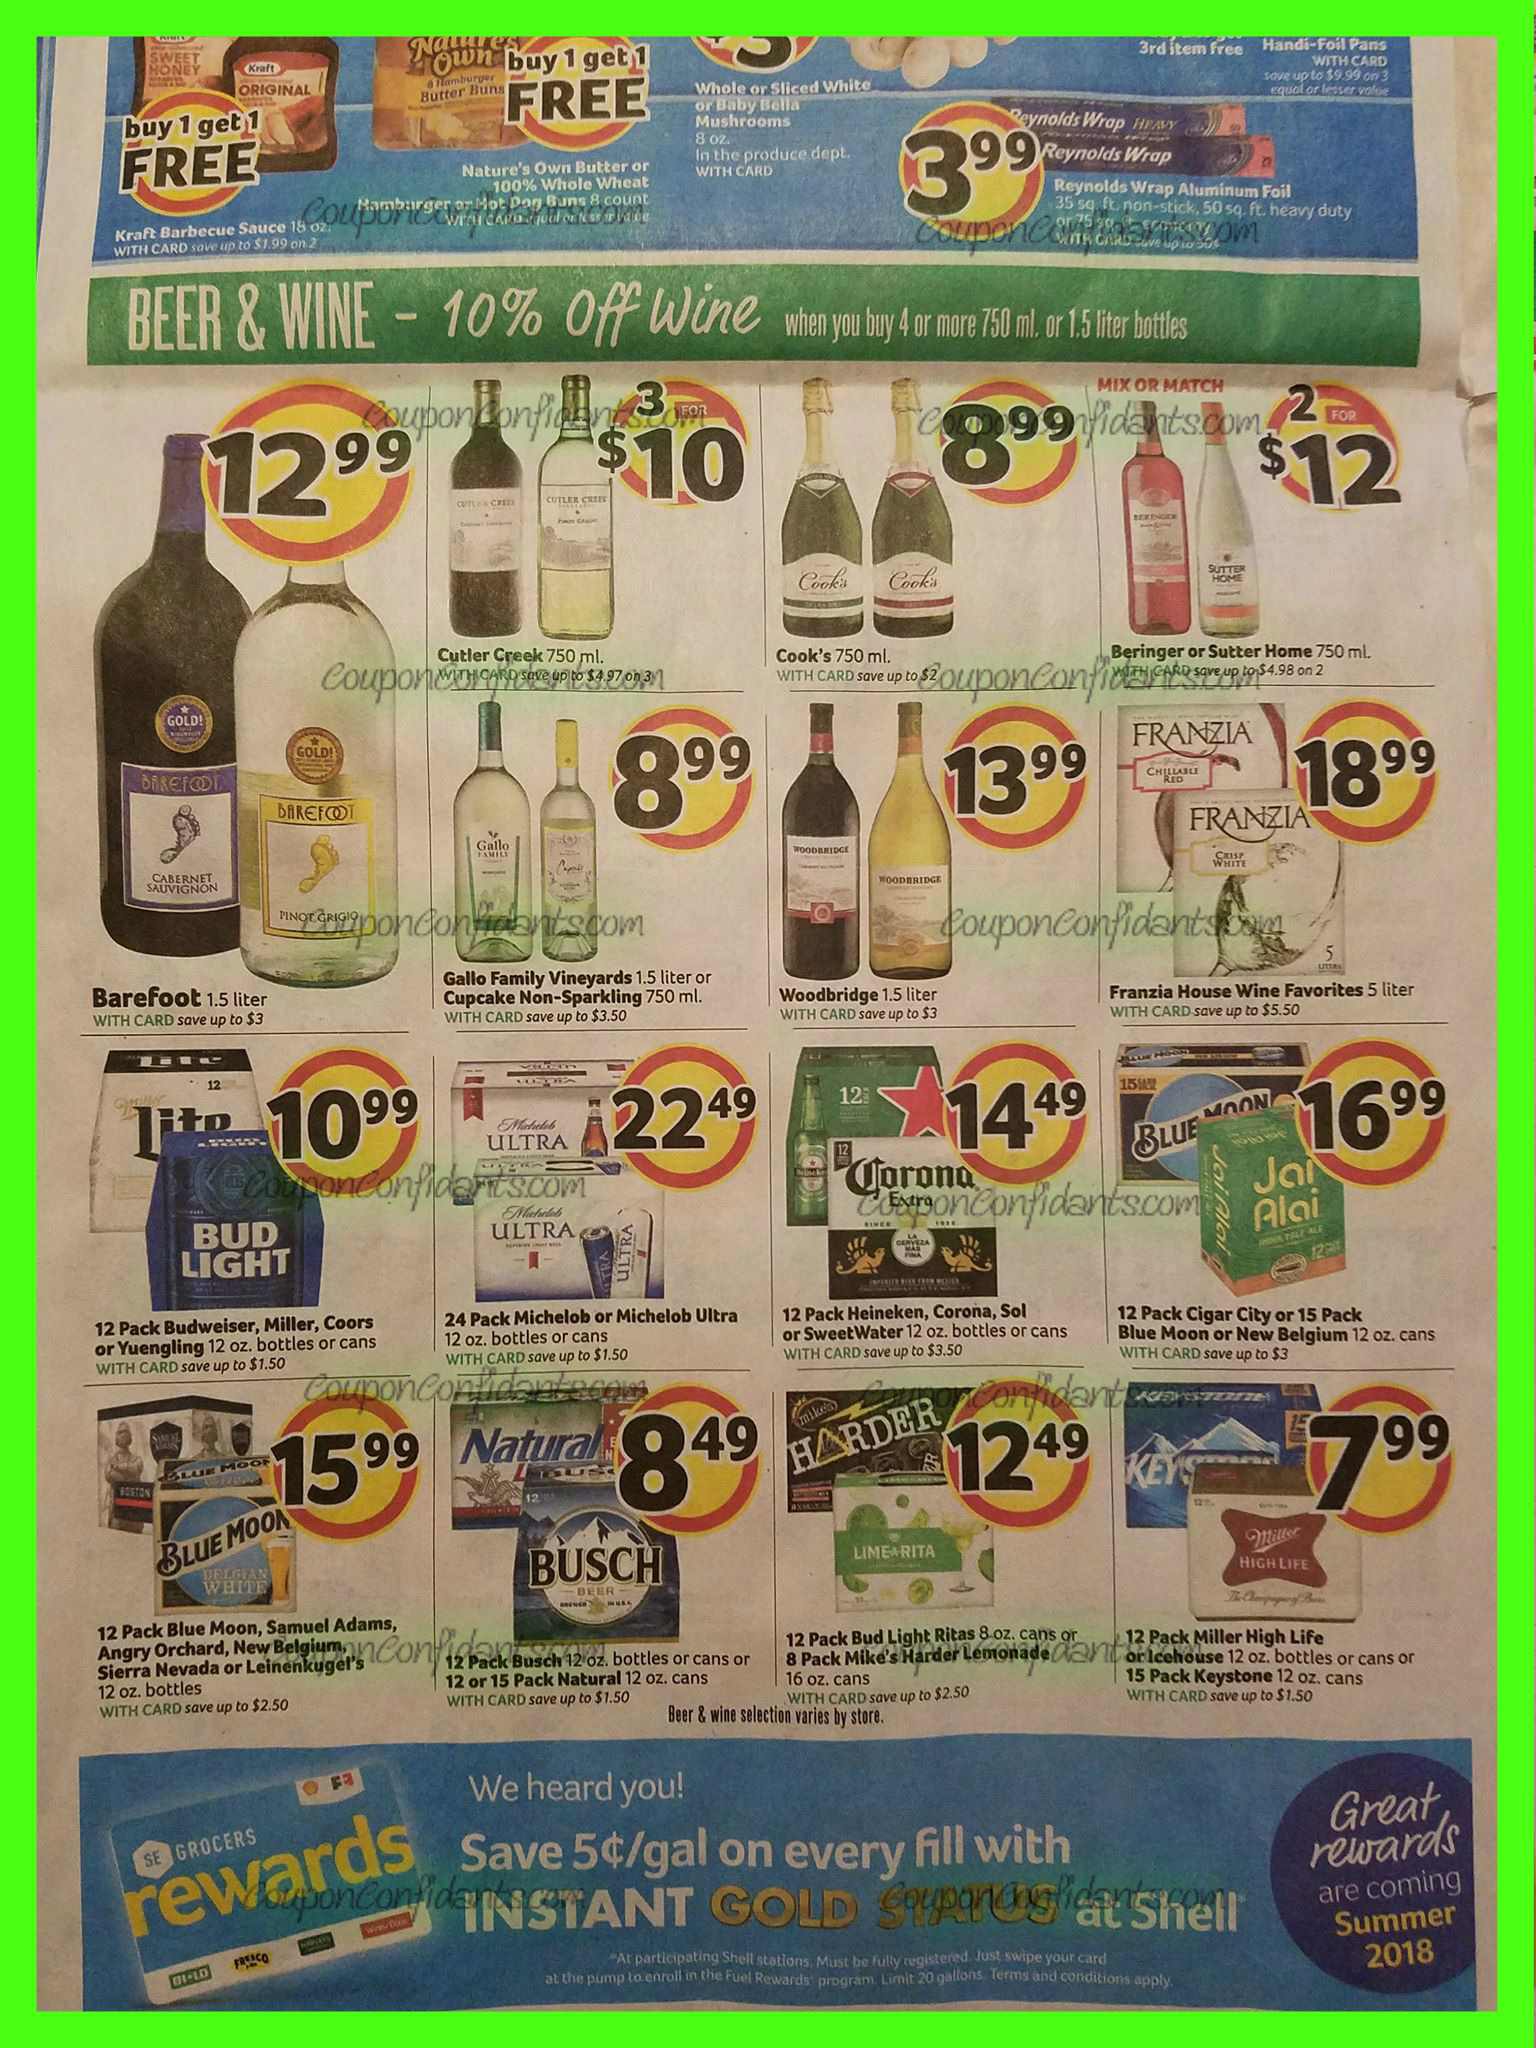 Bi-lo AD Scan and Best Deals! 5/23 - 5/29 ⋆ Page 6 of 21 ⋆ Coupon